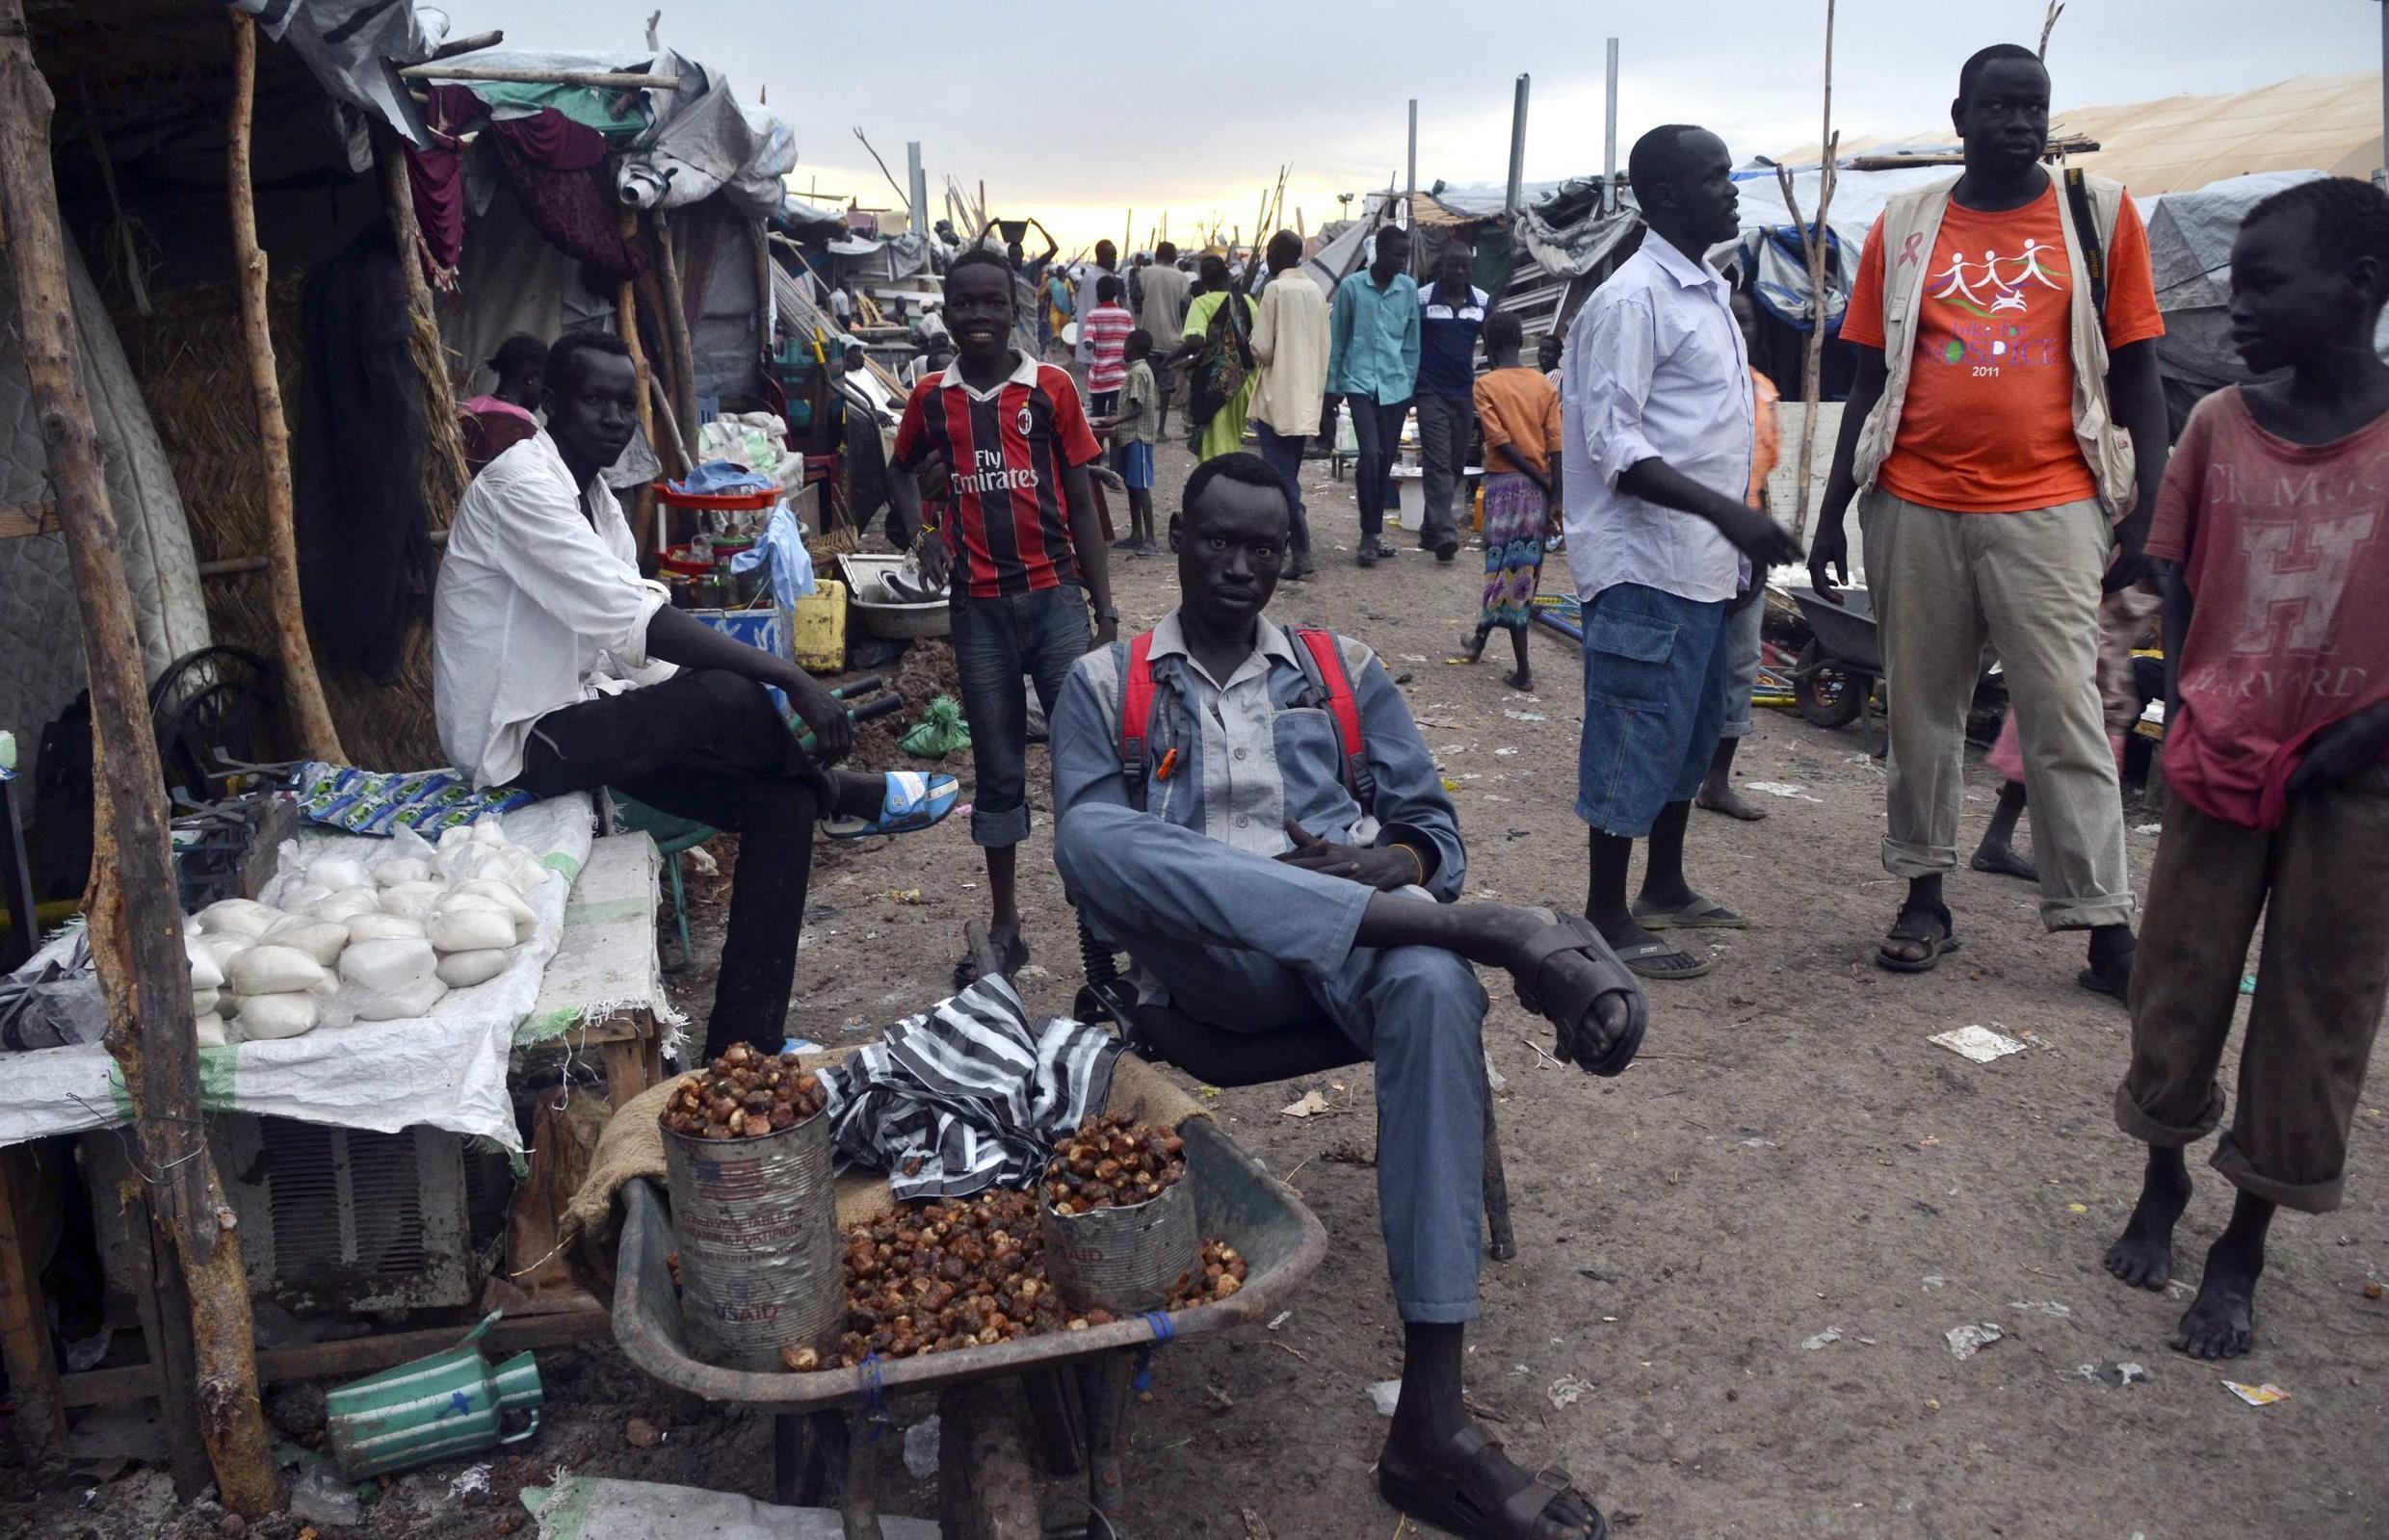 Residents displaced by recent fighting in Malakal camp, South Sudan, 1 may 2014.